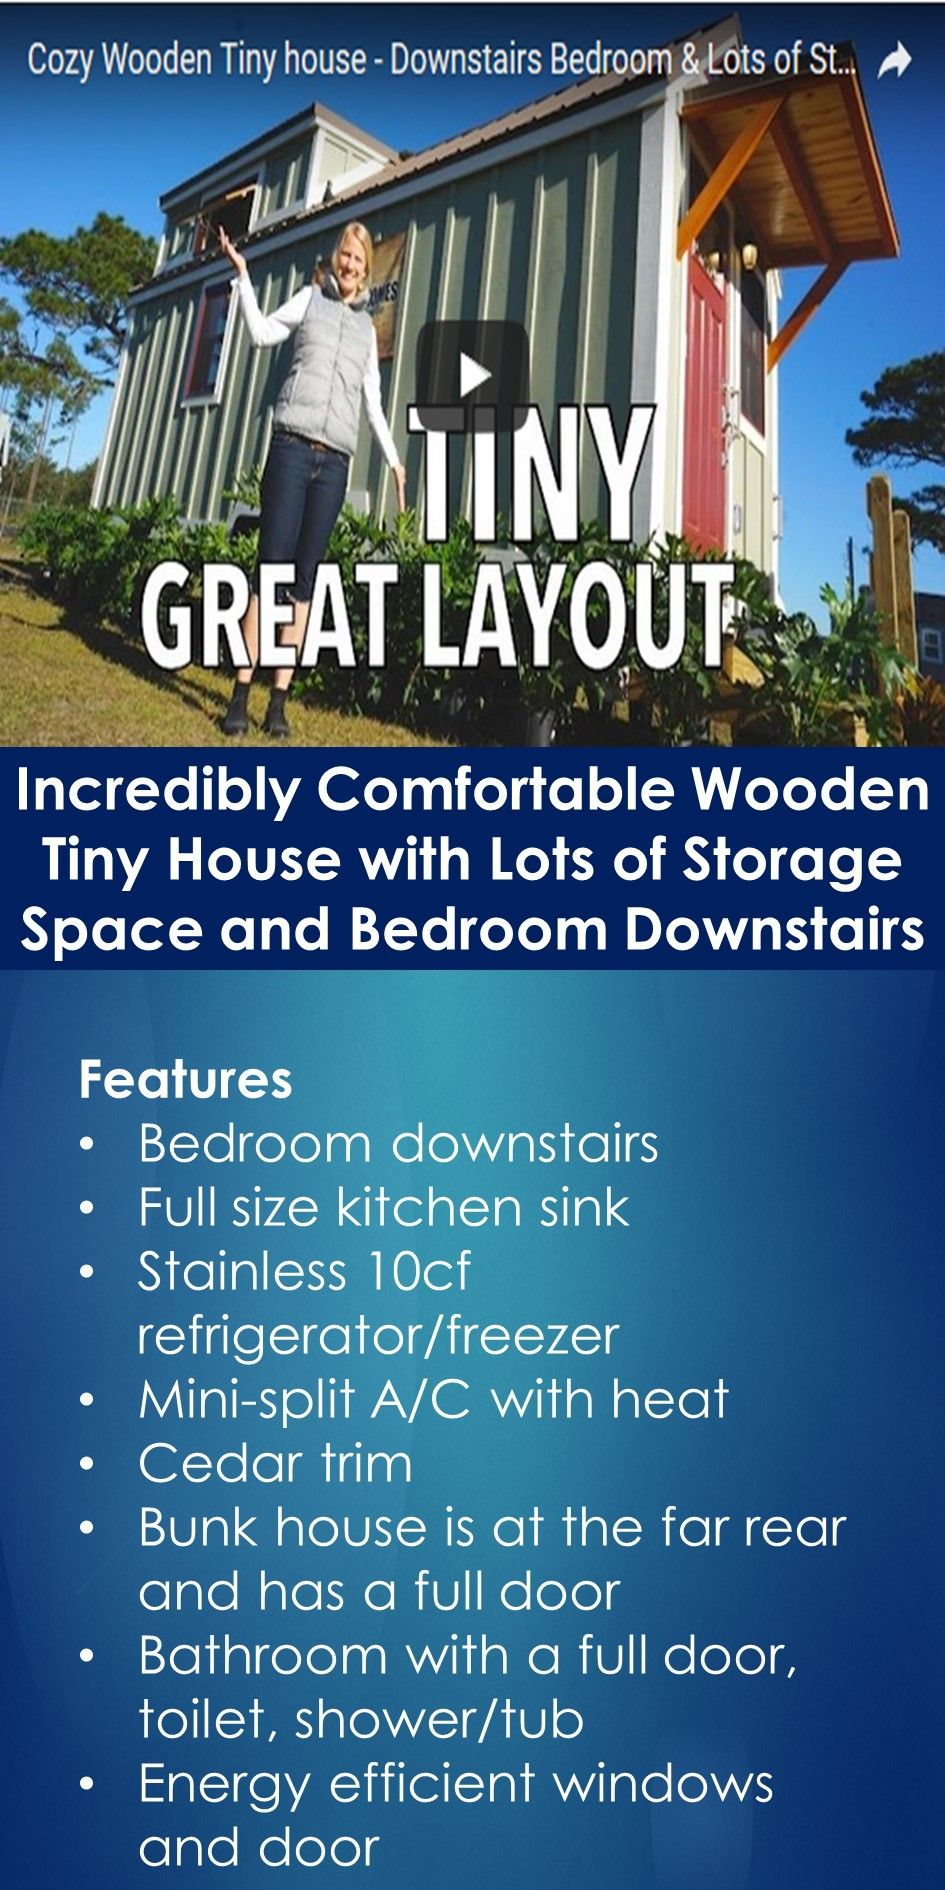 Incredibly Comfortable Wooden Tiny House with Lots of Storage Space and Bedroom Downstairs   In This Guide, You Will Learn The Following; Tiny House On Wheels With Bedroom Downstairs, Tiny House With Bedroom And Loft, Tiny House Plans With Bedroom On Main Floor, Loftless Tiny House, 3 Bedroom Tiny House Floor Plans, Tiny House Bed Under Kitchen, Tiny House Plans Without Loft, One Level Tiny House On Wheels, Etc.